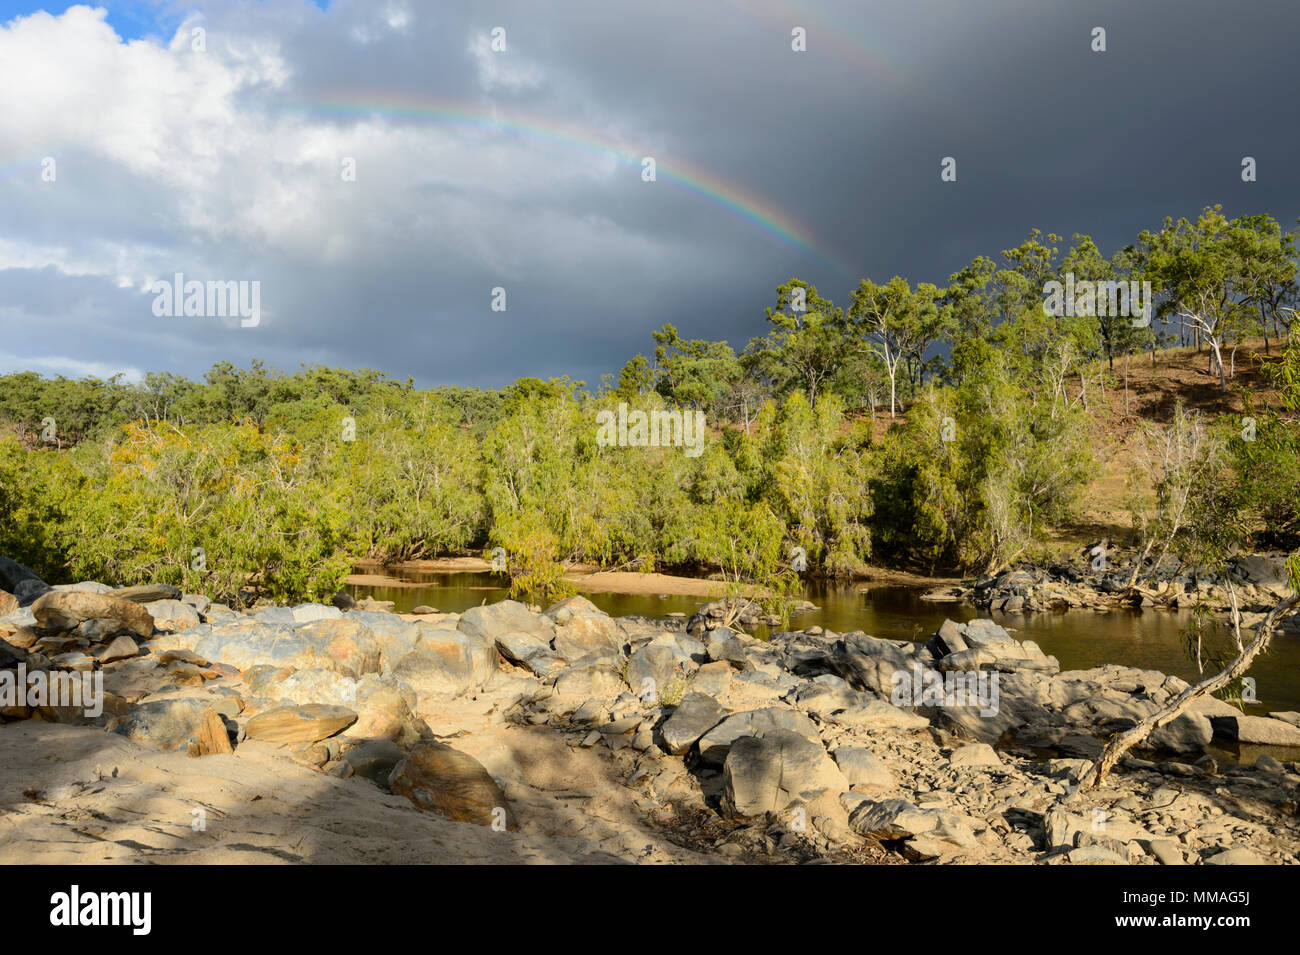 Black clouds and rainbow over bushland in Palmer River Goldfield, Far North Queensland, FNQ, QLD, Australia Stock Photo